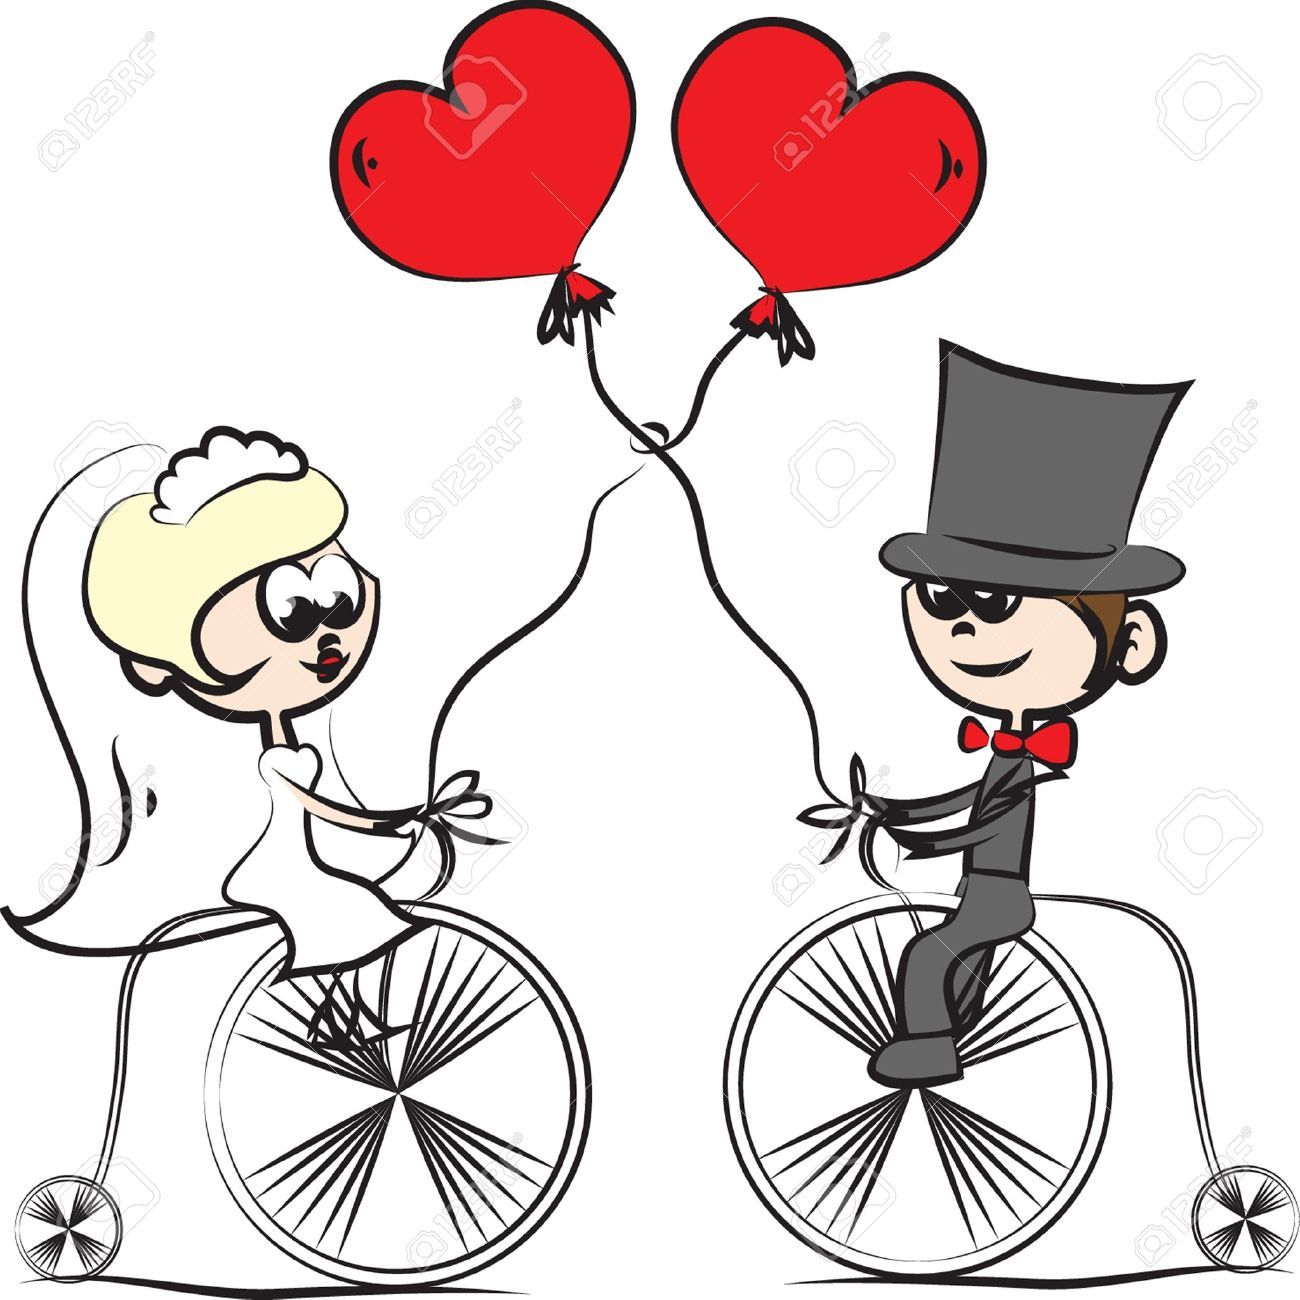 Cartoon Wedding Pictures Royalty Free Cliparts Vectors And Stock